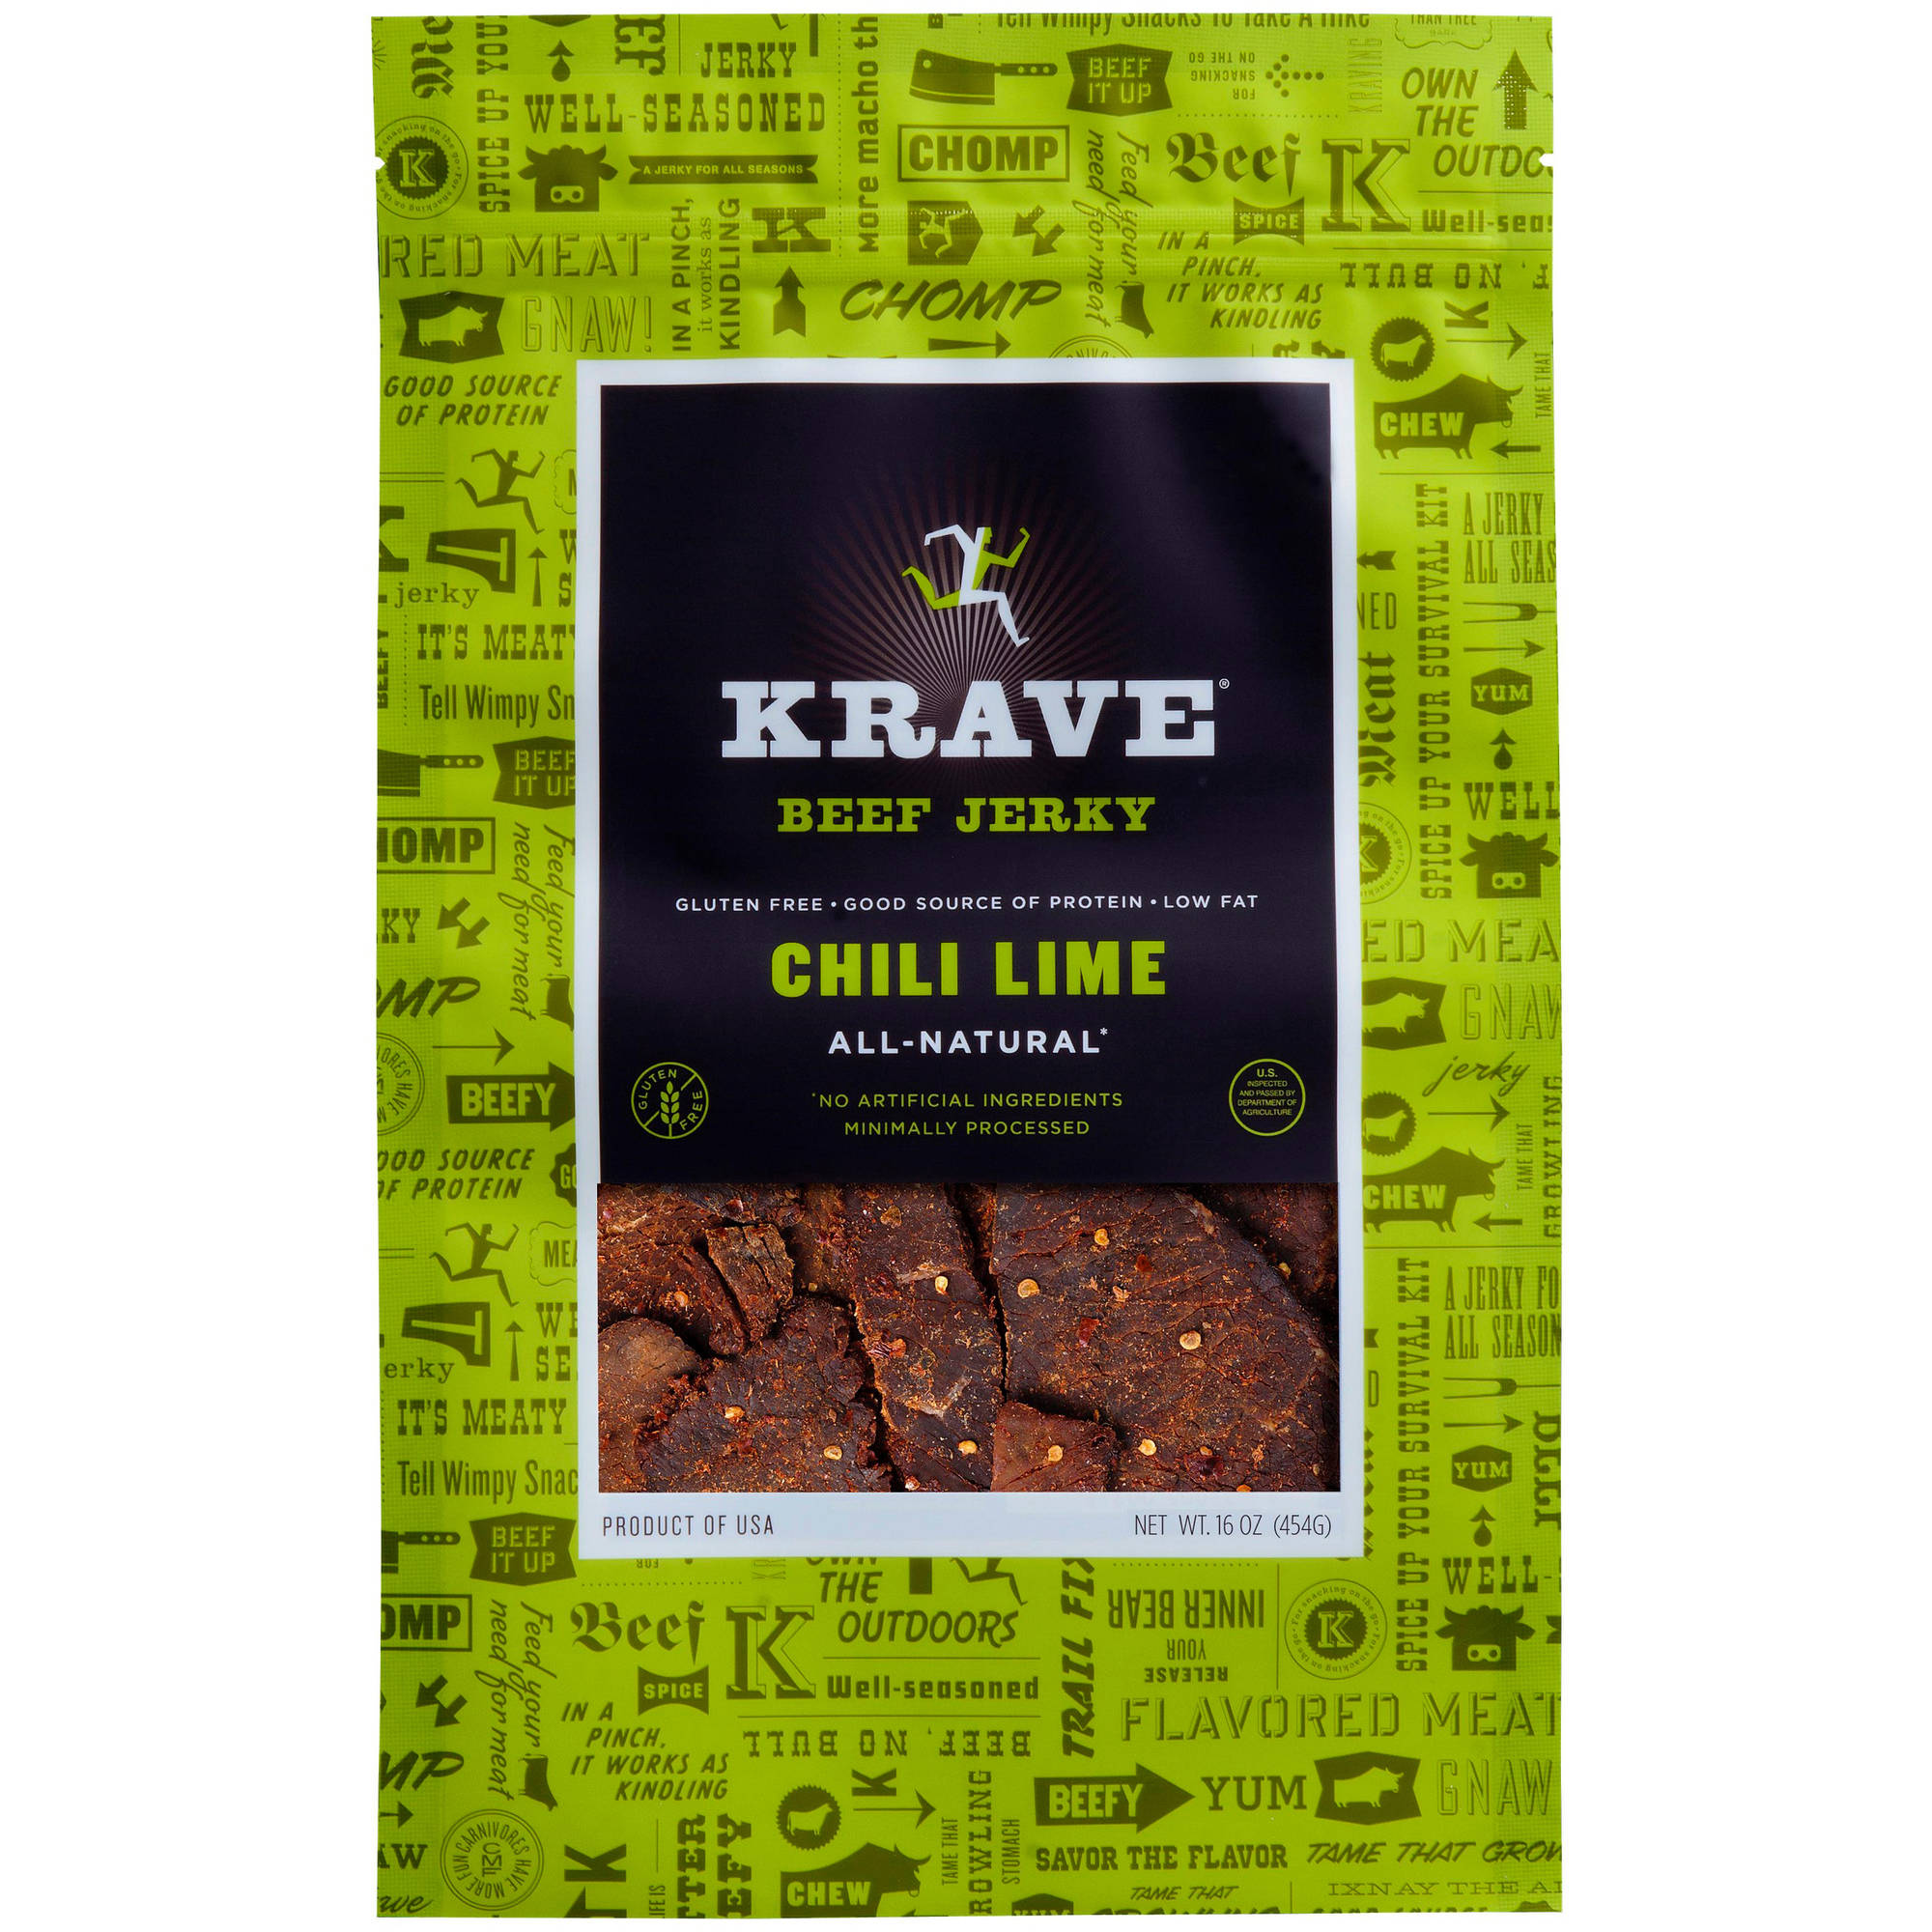 Krave Beef Jerky Chili Lime, 16 oz - Online Only